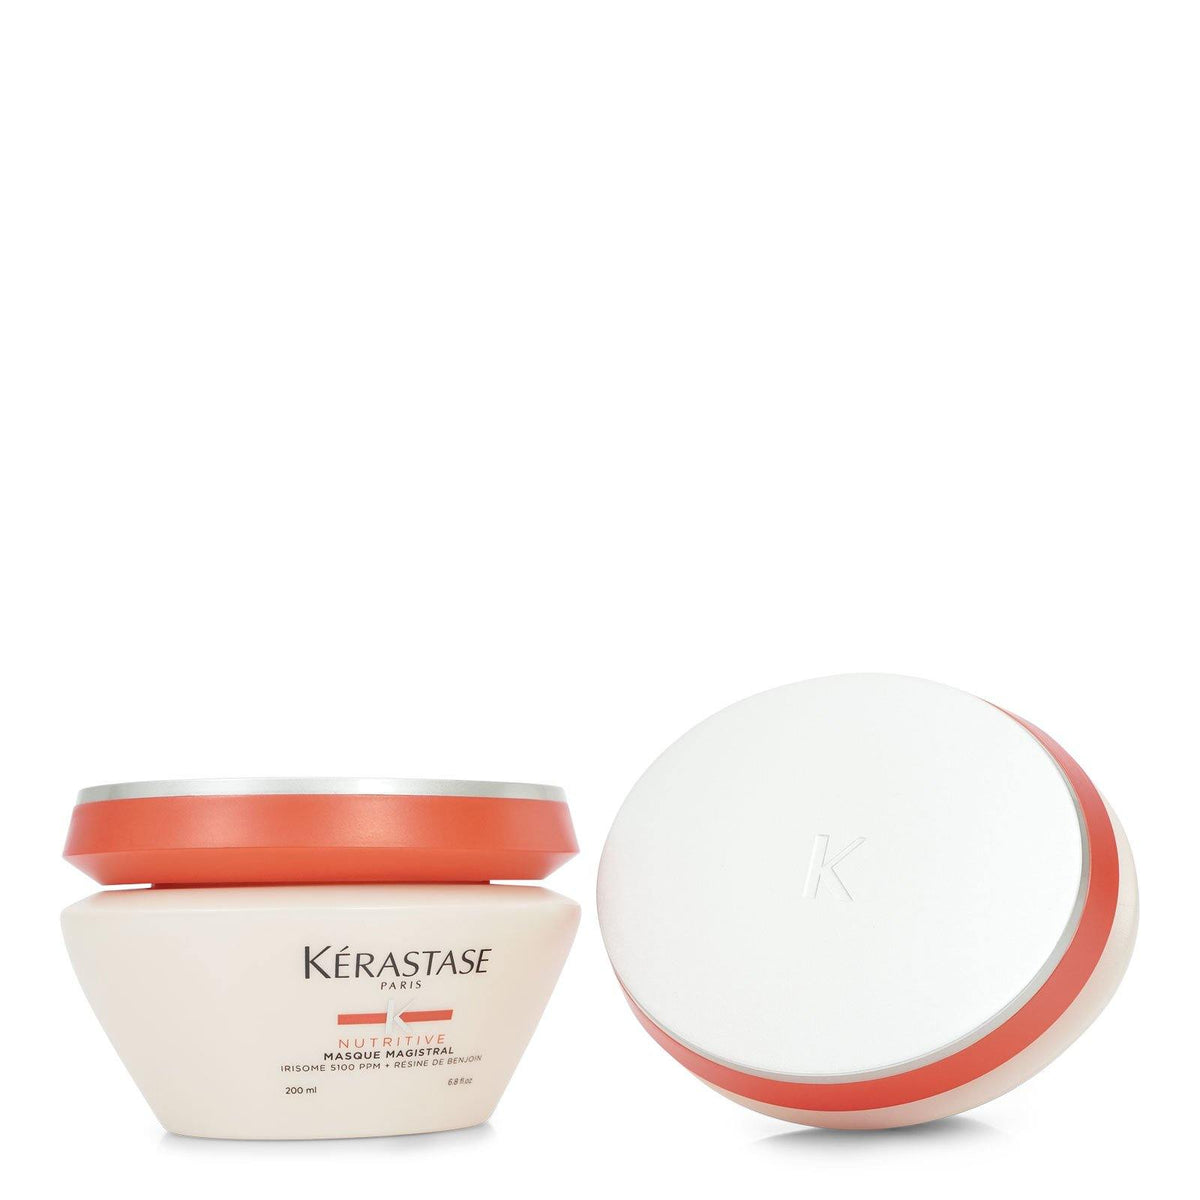 Kerastase Nutritive Hair Masque Magistral 200ml/6.8 fl oz (3/cs)